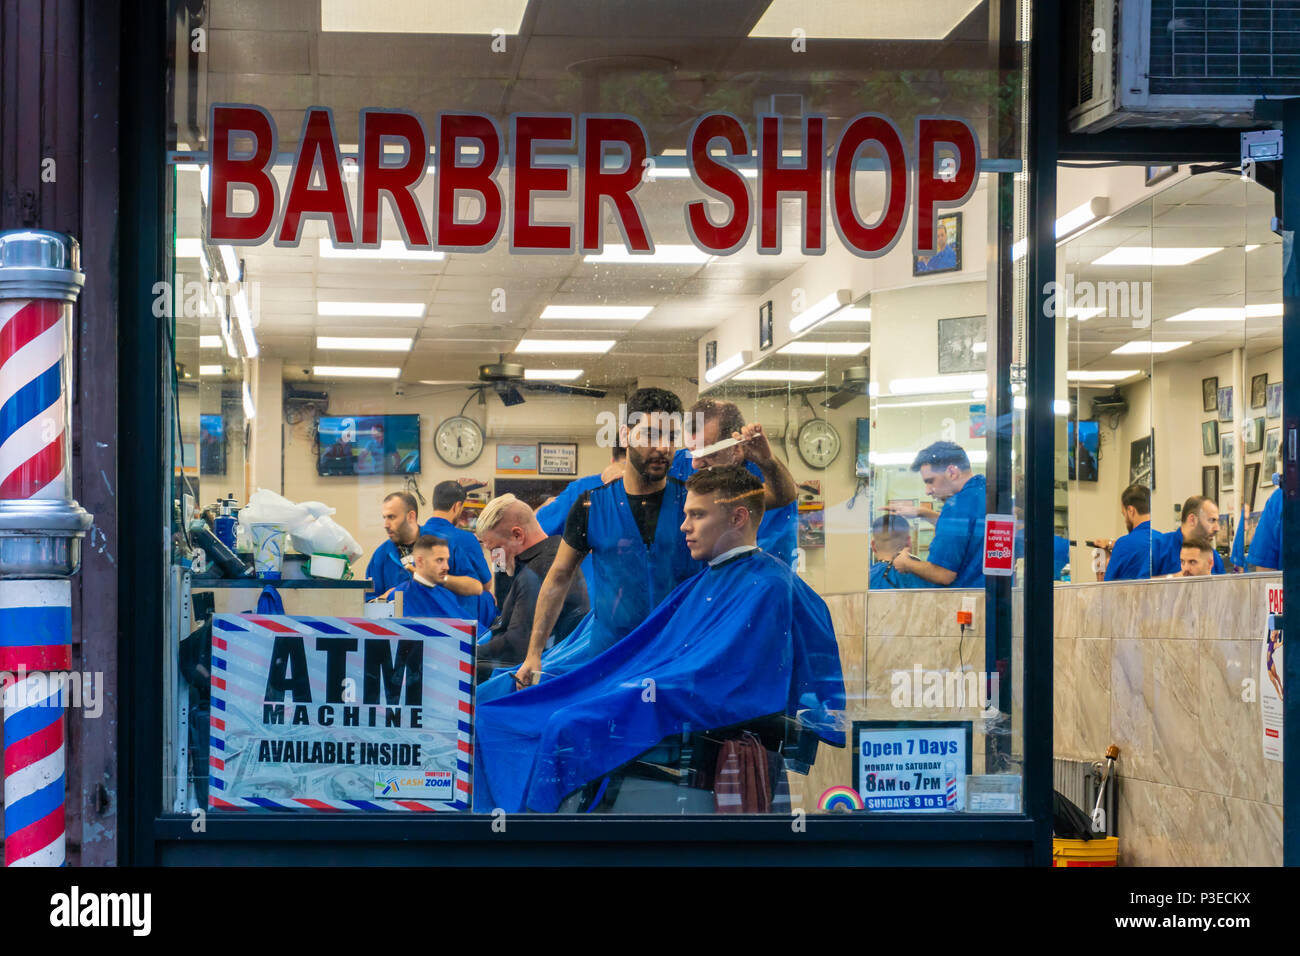 People getting haircut in a barber shop - Stock Image